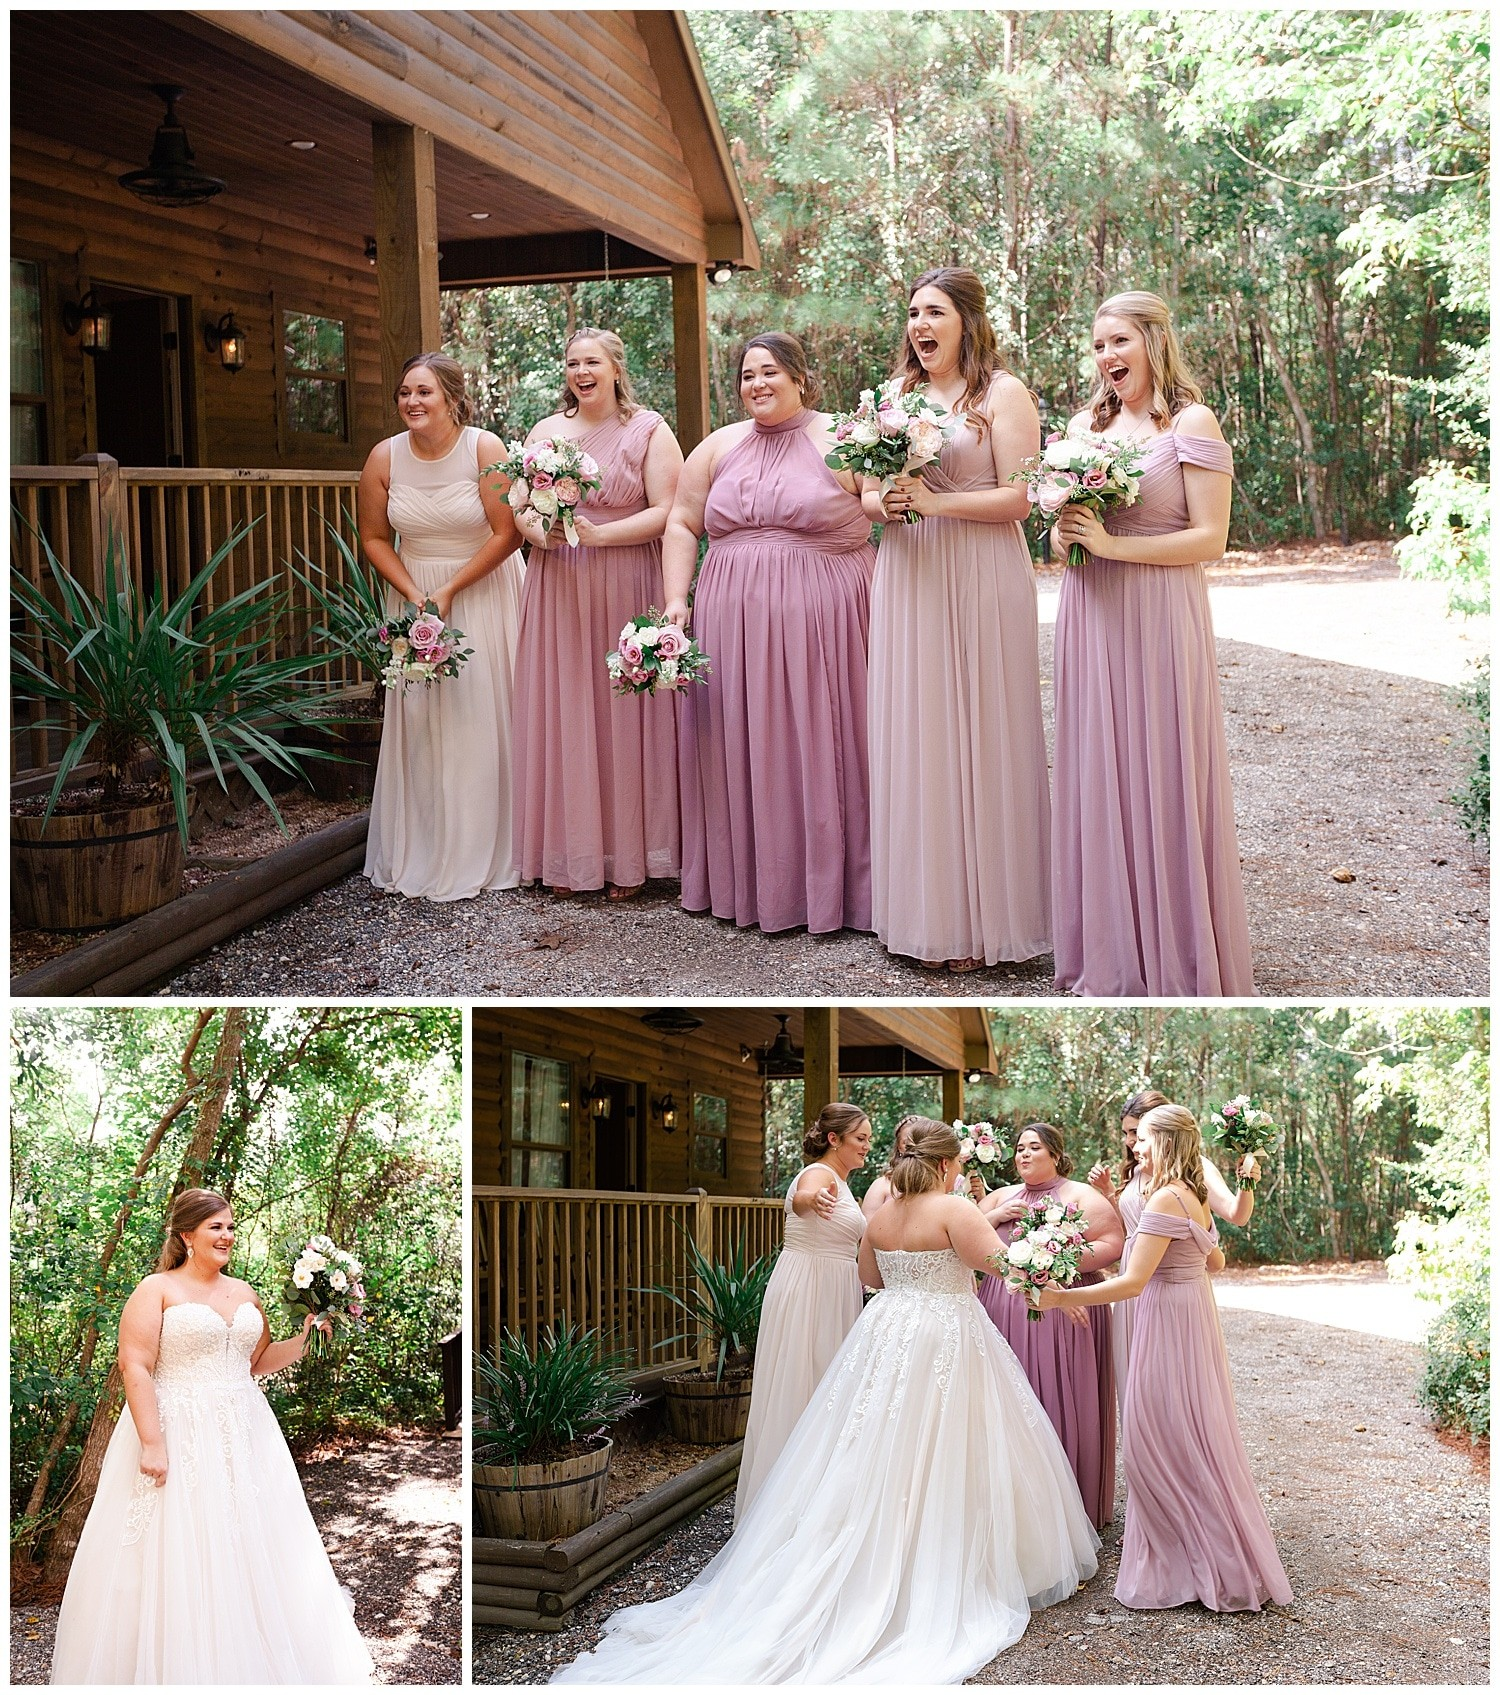 Romantic Magnolia Bells Houston wedding captured by Houston wedding photographer Swish and Click Photography